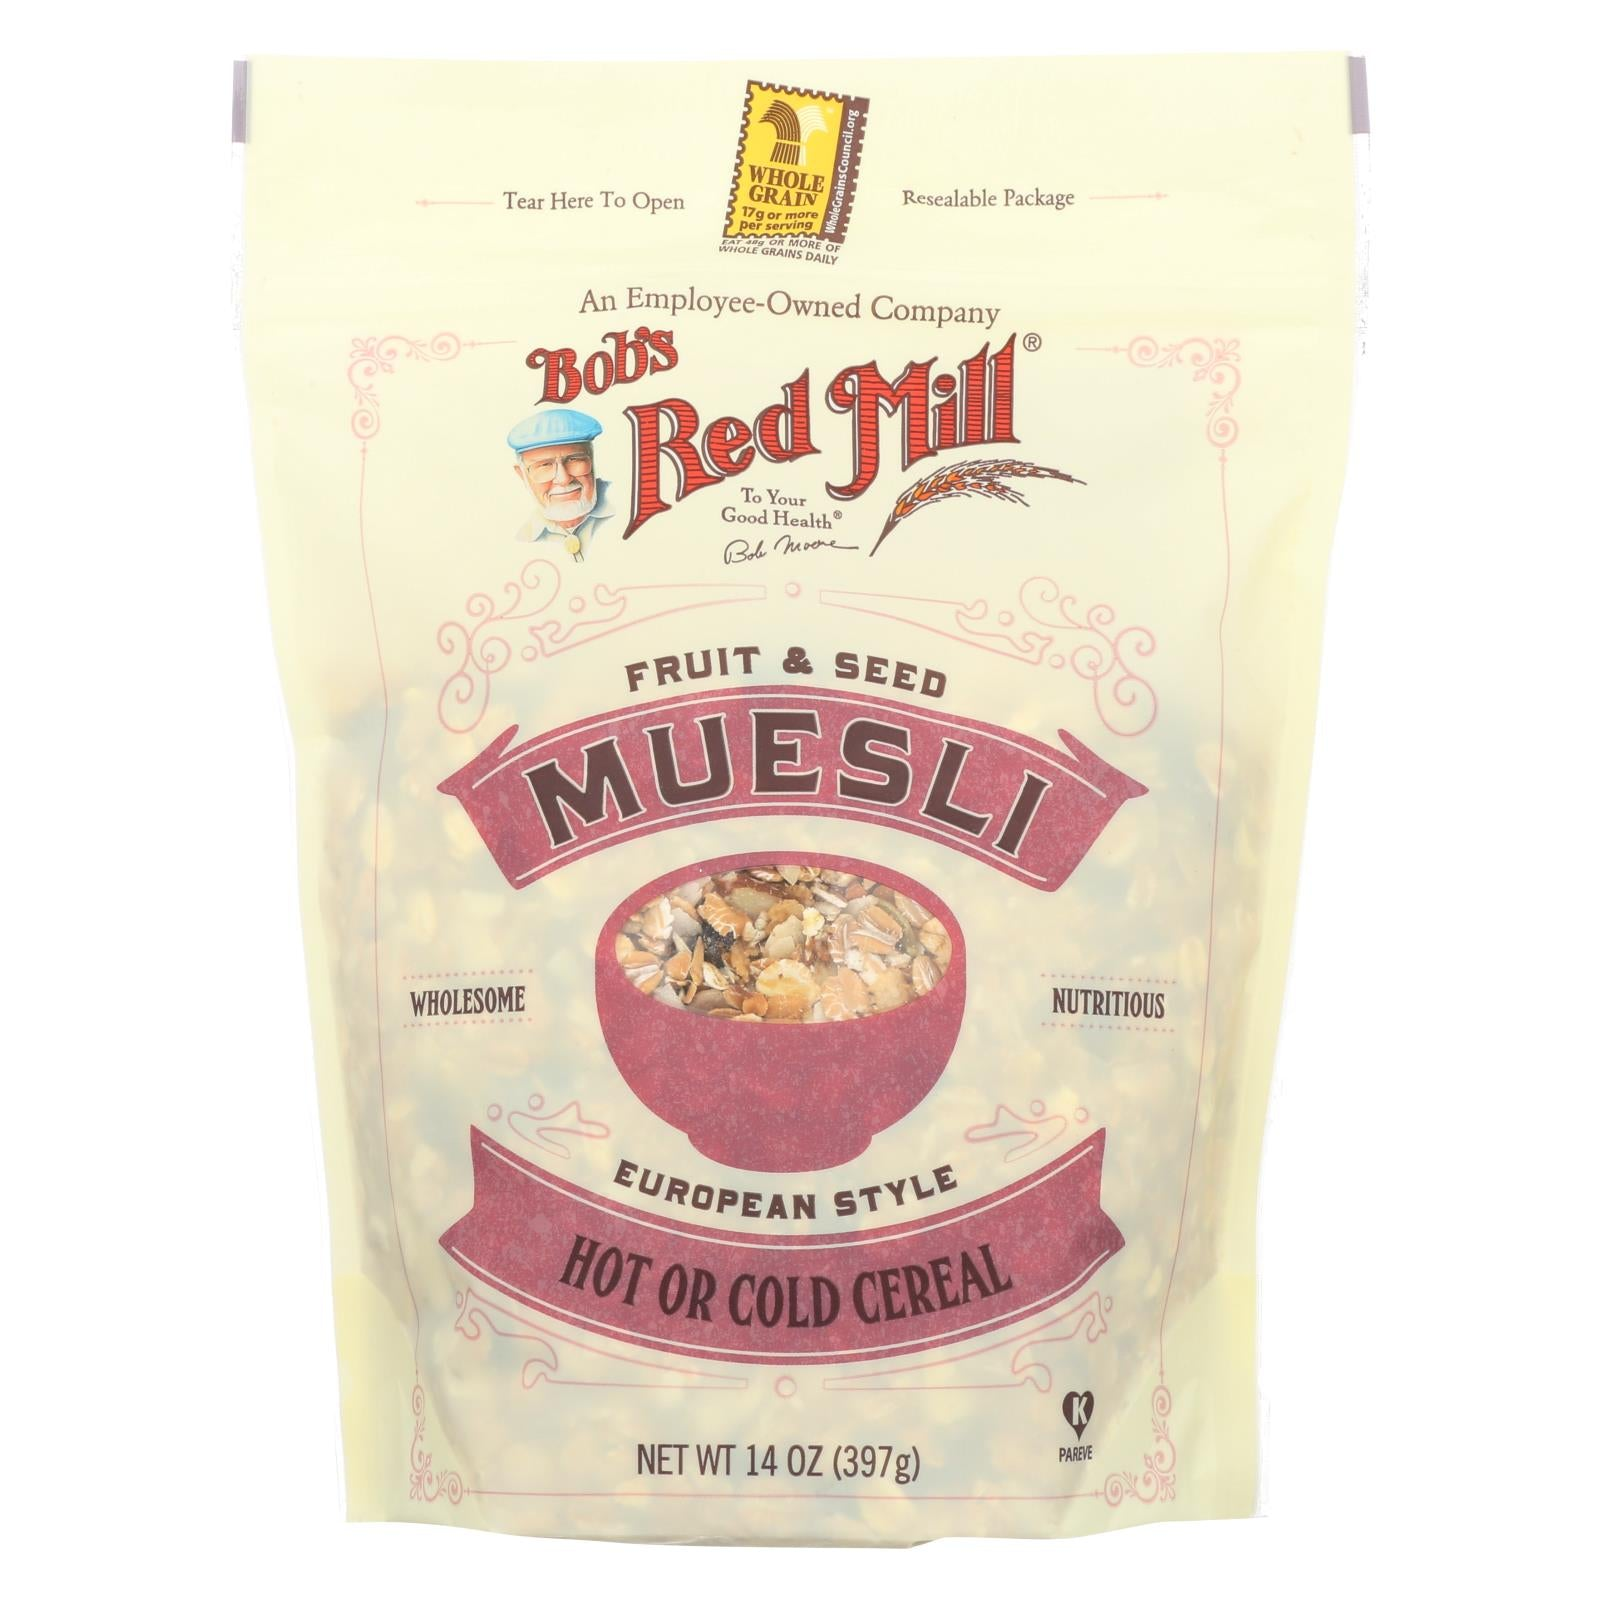 Bob's Red Mill Cereal - Fruit & Seed Muesli - Case Of 4 - 14 Oz HG1986231